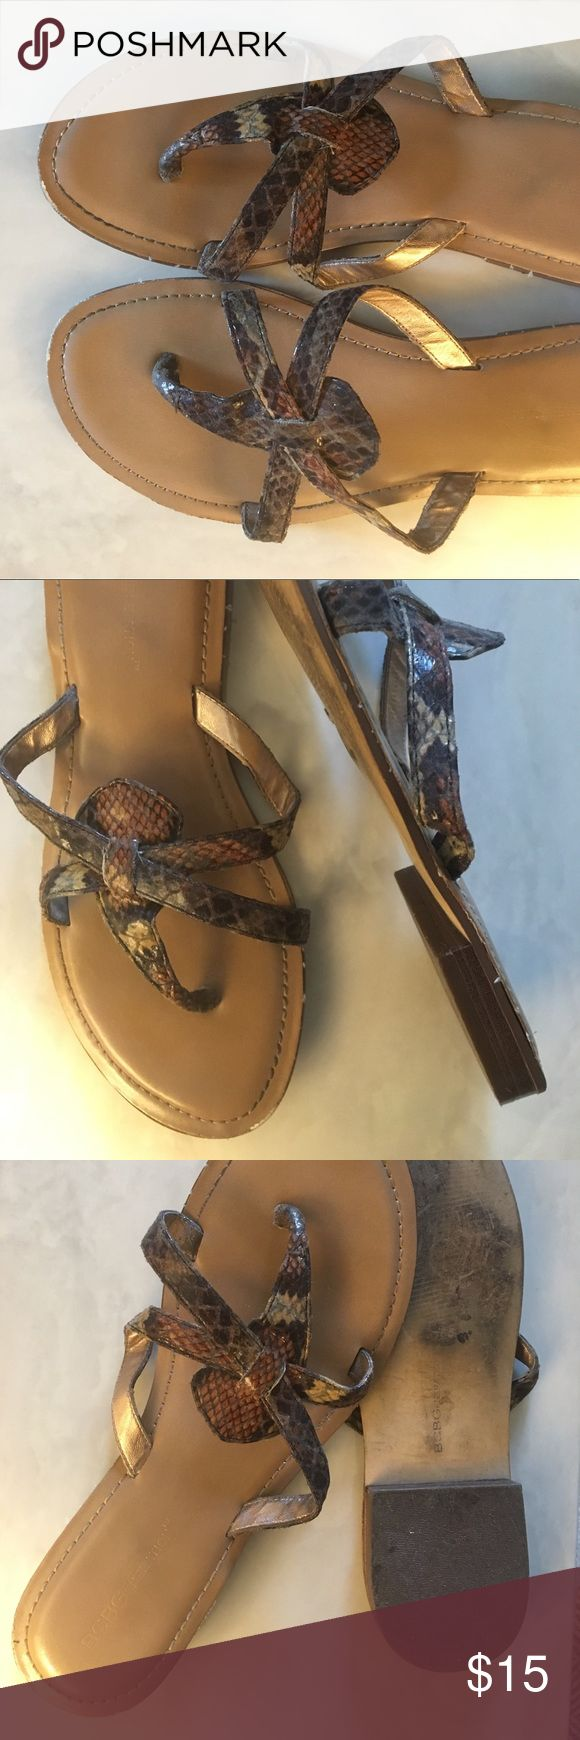 Neutral Sandals | BCBG | size 7 BCBGeneration 'Buffie' sandals. Very good used condition. Great neutral sandal to go with all your casual summer outfits. Size 7. BCBG Shoes Sandals